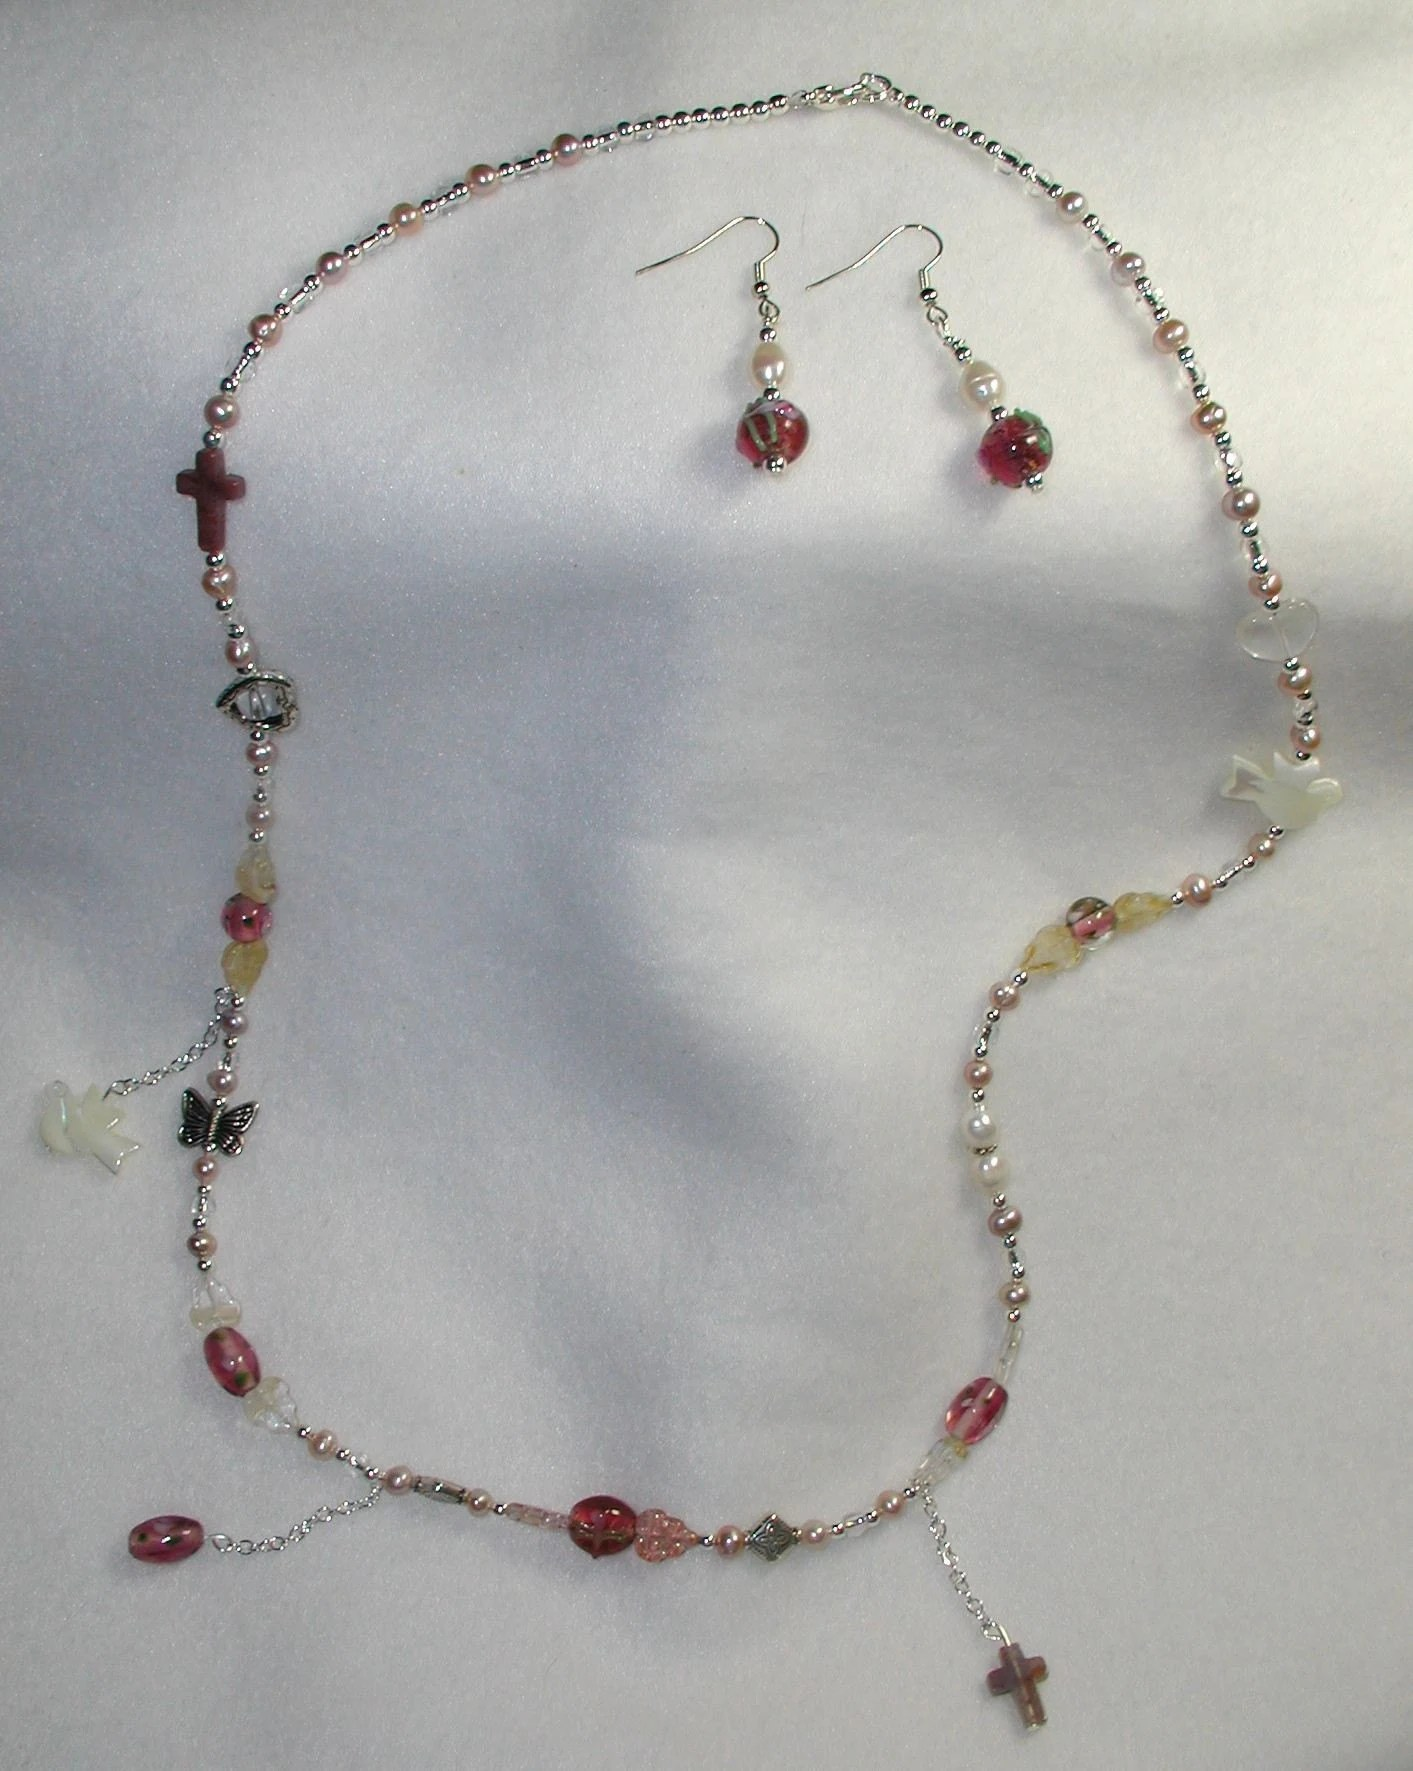 Long Necklace and Earring Set with Religious Symbols